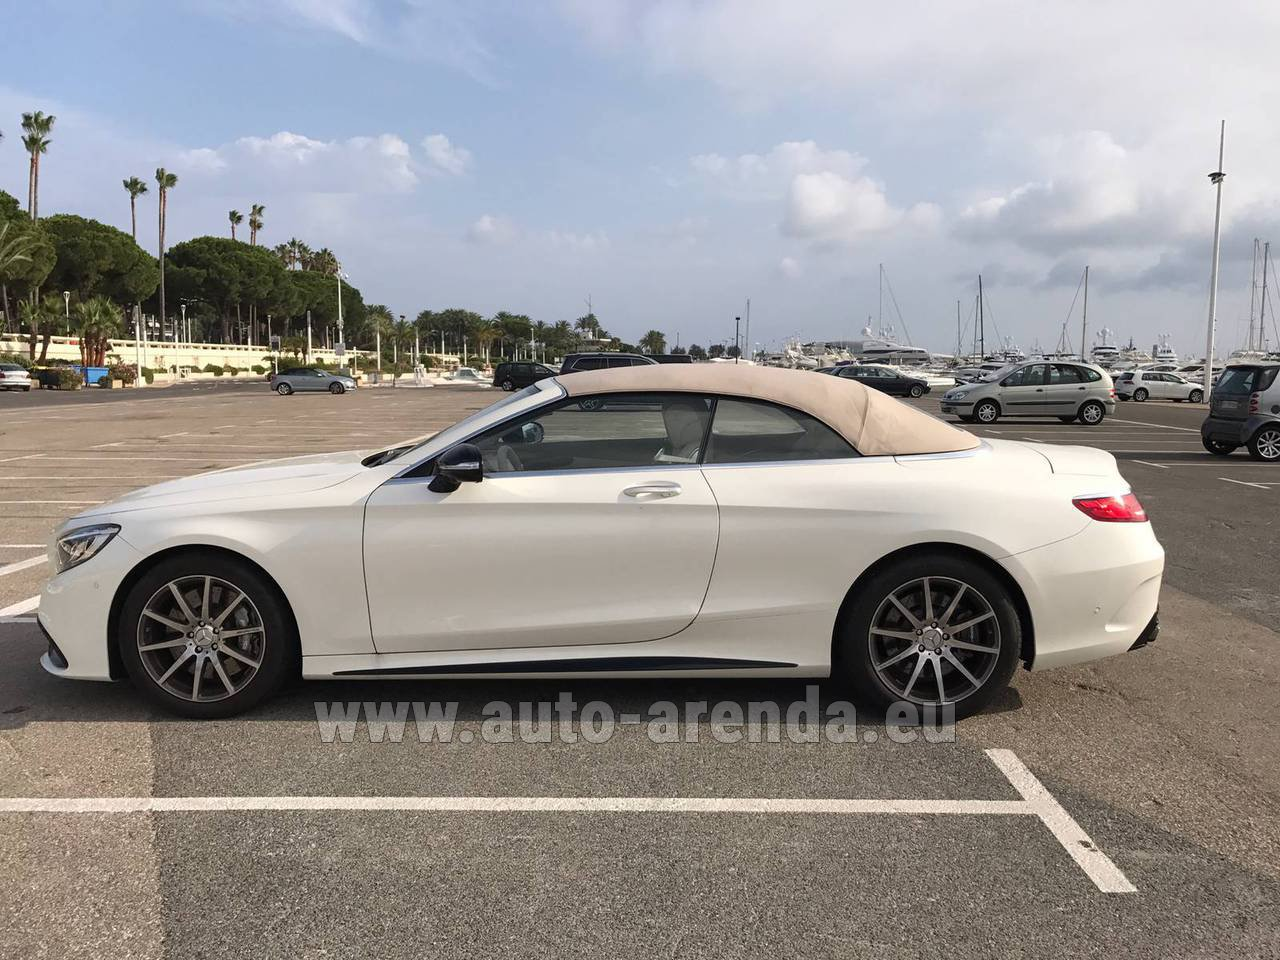 The czech republic mercedes benz s 63 cabrio amg rental for Mercedes benz rental prices